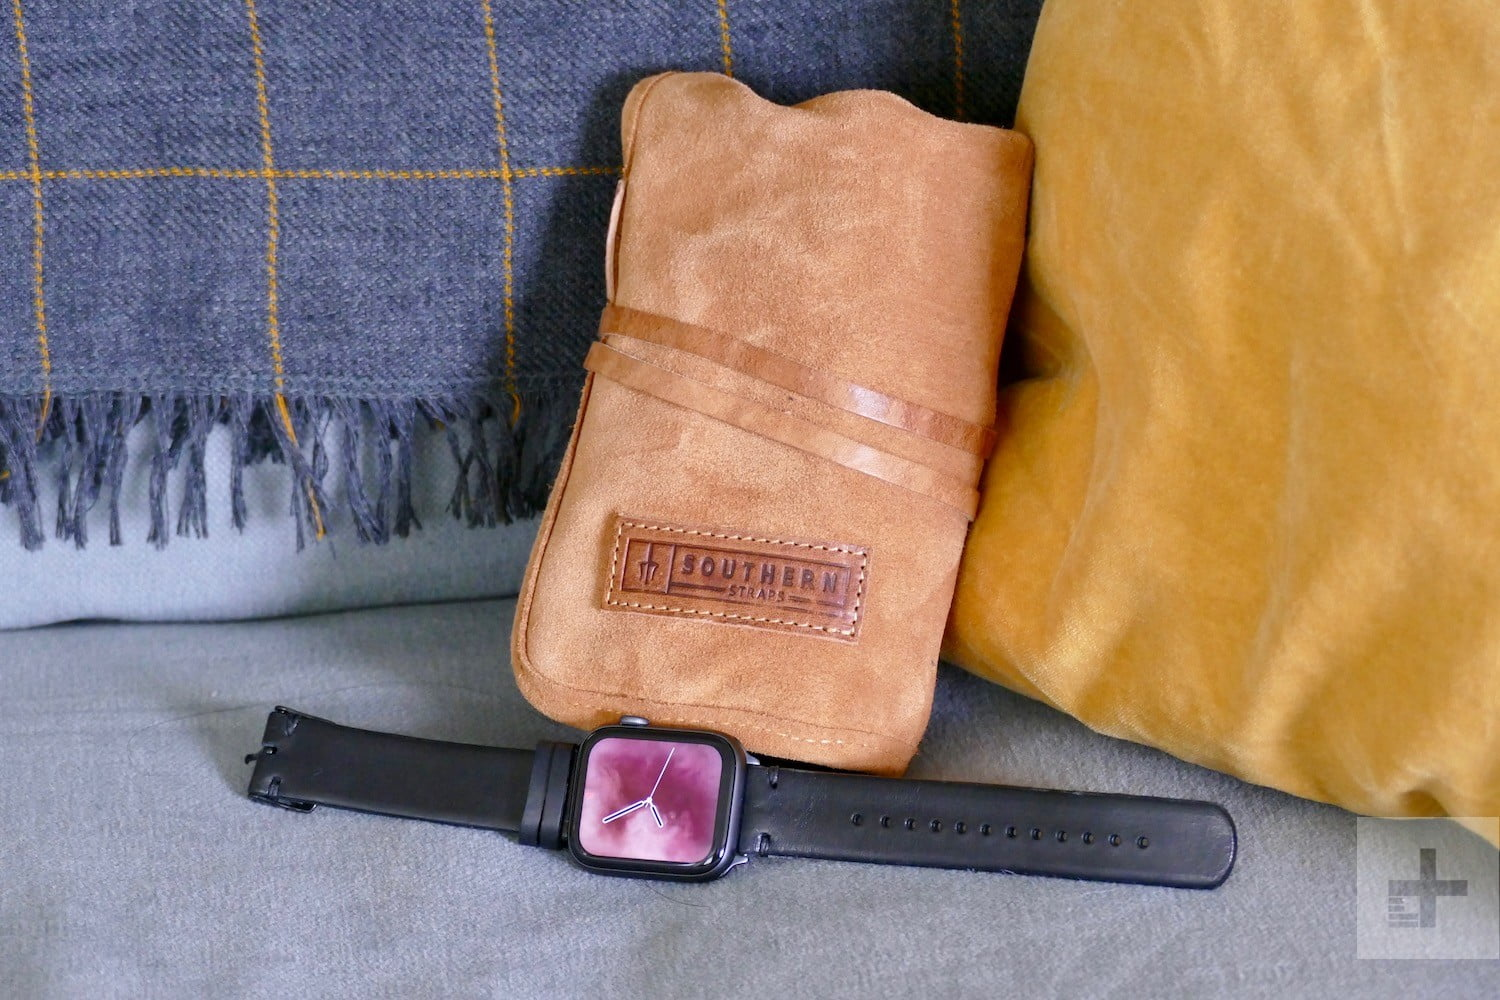 apple watch spring straps roll product impressions strap - fortnite apple watch band